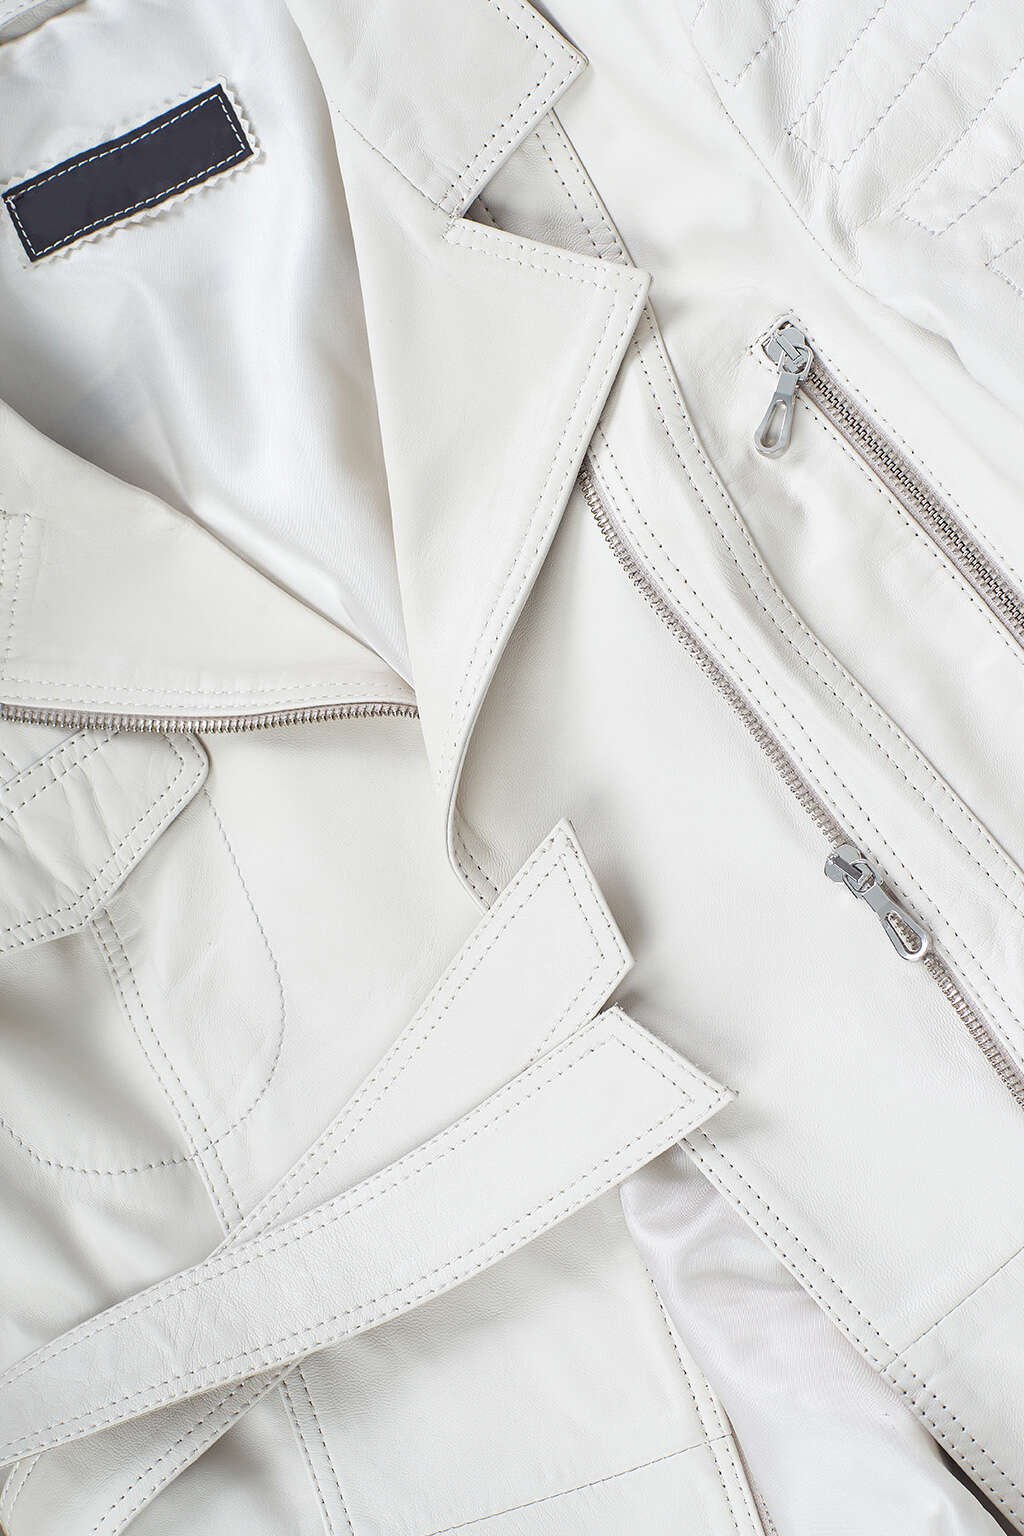 Belt and Collar Detail of Pearl White Belted Leather Jacket